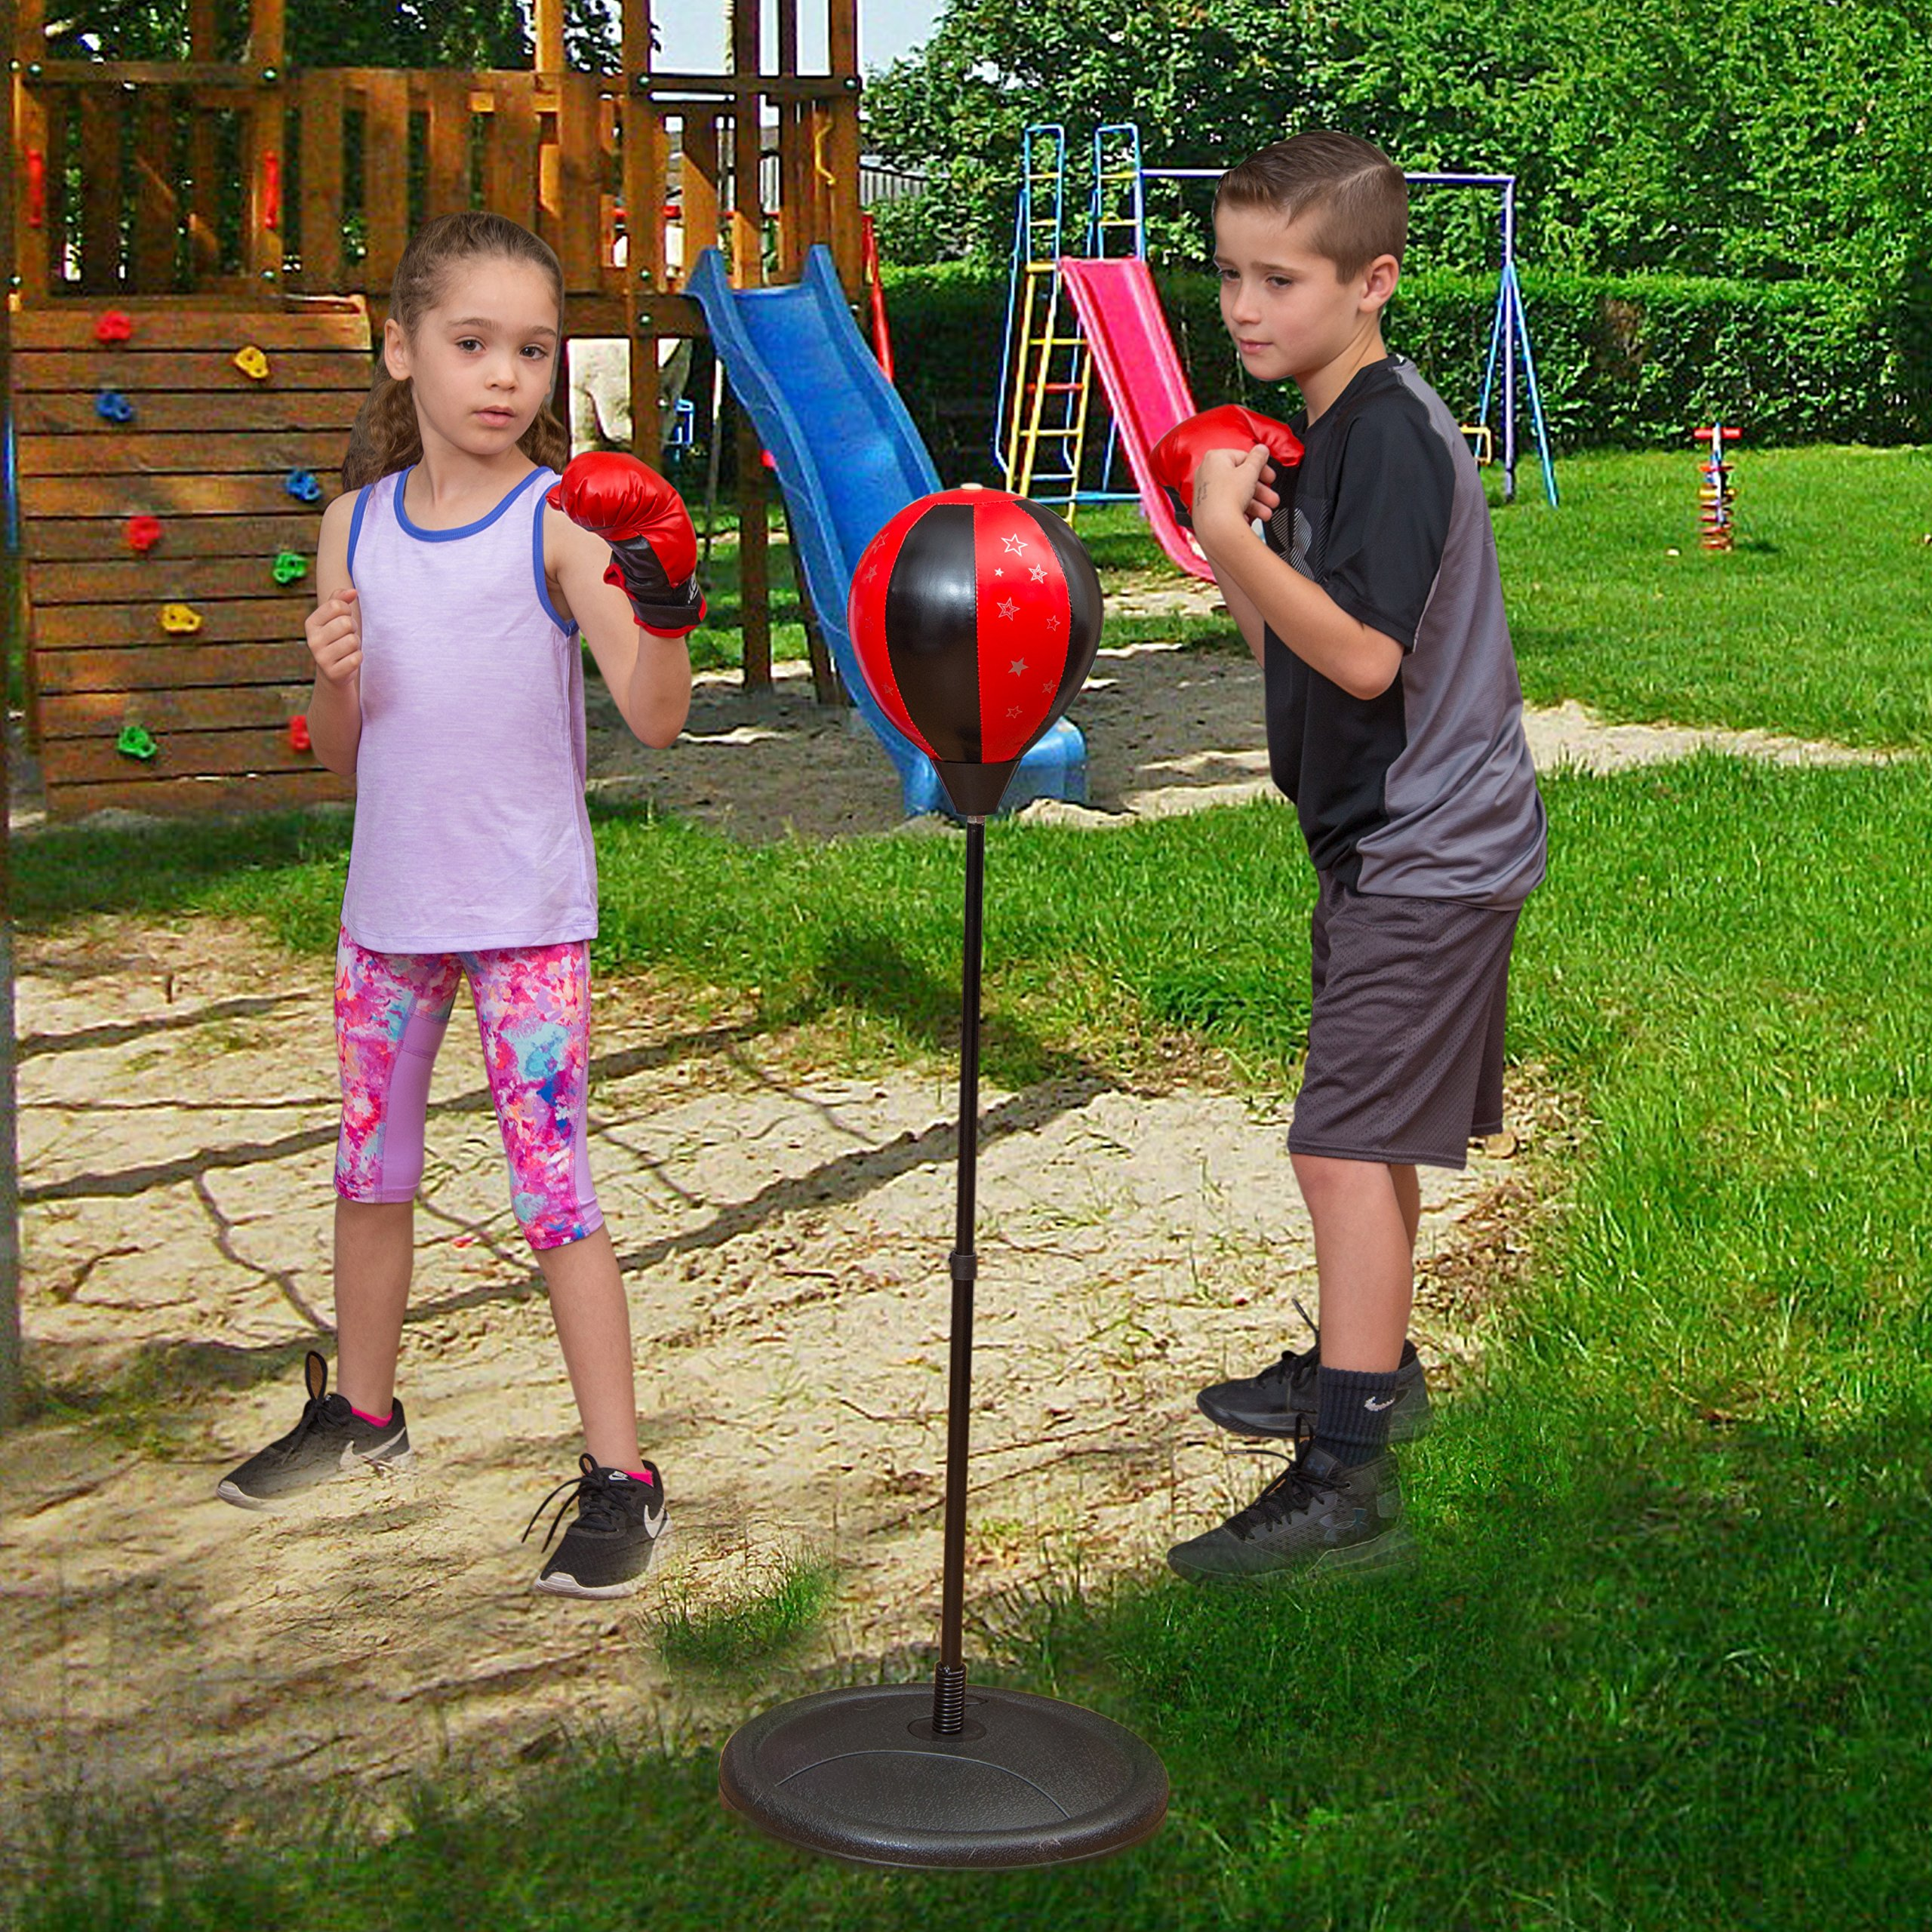 ToyVelt Sport Boxing Set: Boxing Punching Ball + Boxing Gloves Kit to Teach Kids Confidence, Balance & Hand-Eye Coordination | Height Adjustable Base, Easy Setup & Portable Design | Top Gifting Idea by ToyVelt